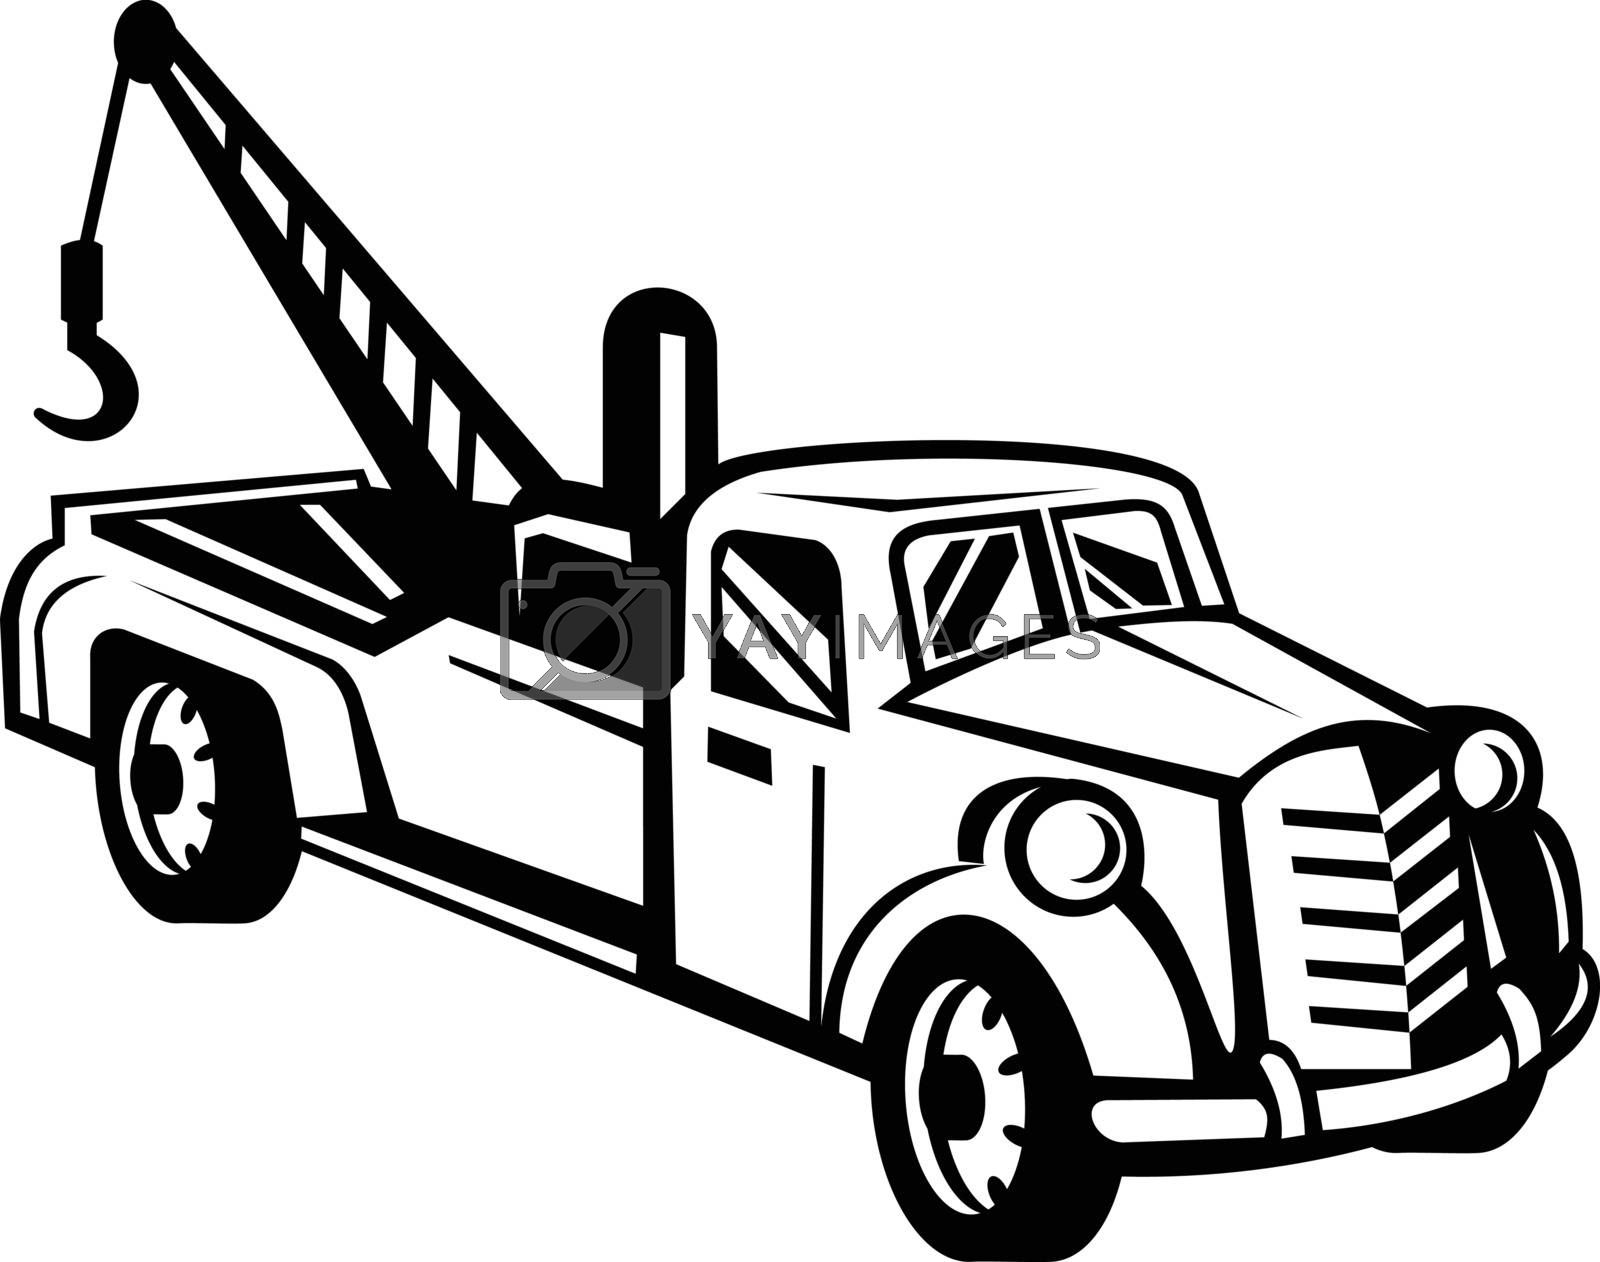 Black and white illustration of a vintage tow truck or wrecker pick-up truck lorry viewed from high angle on side done in retro style.